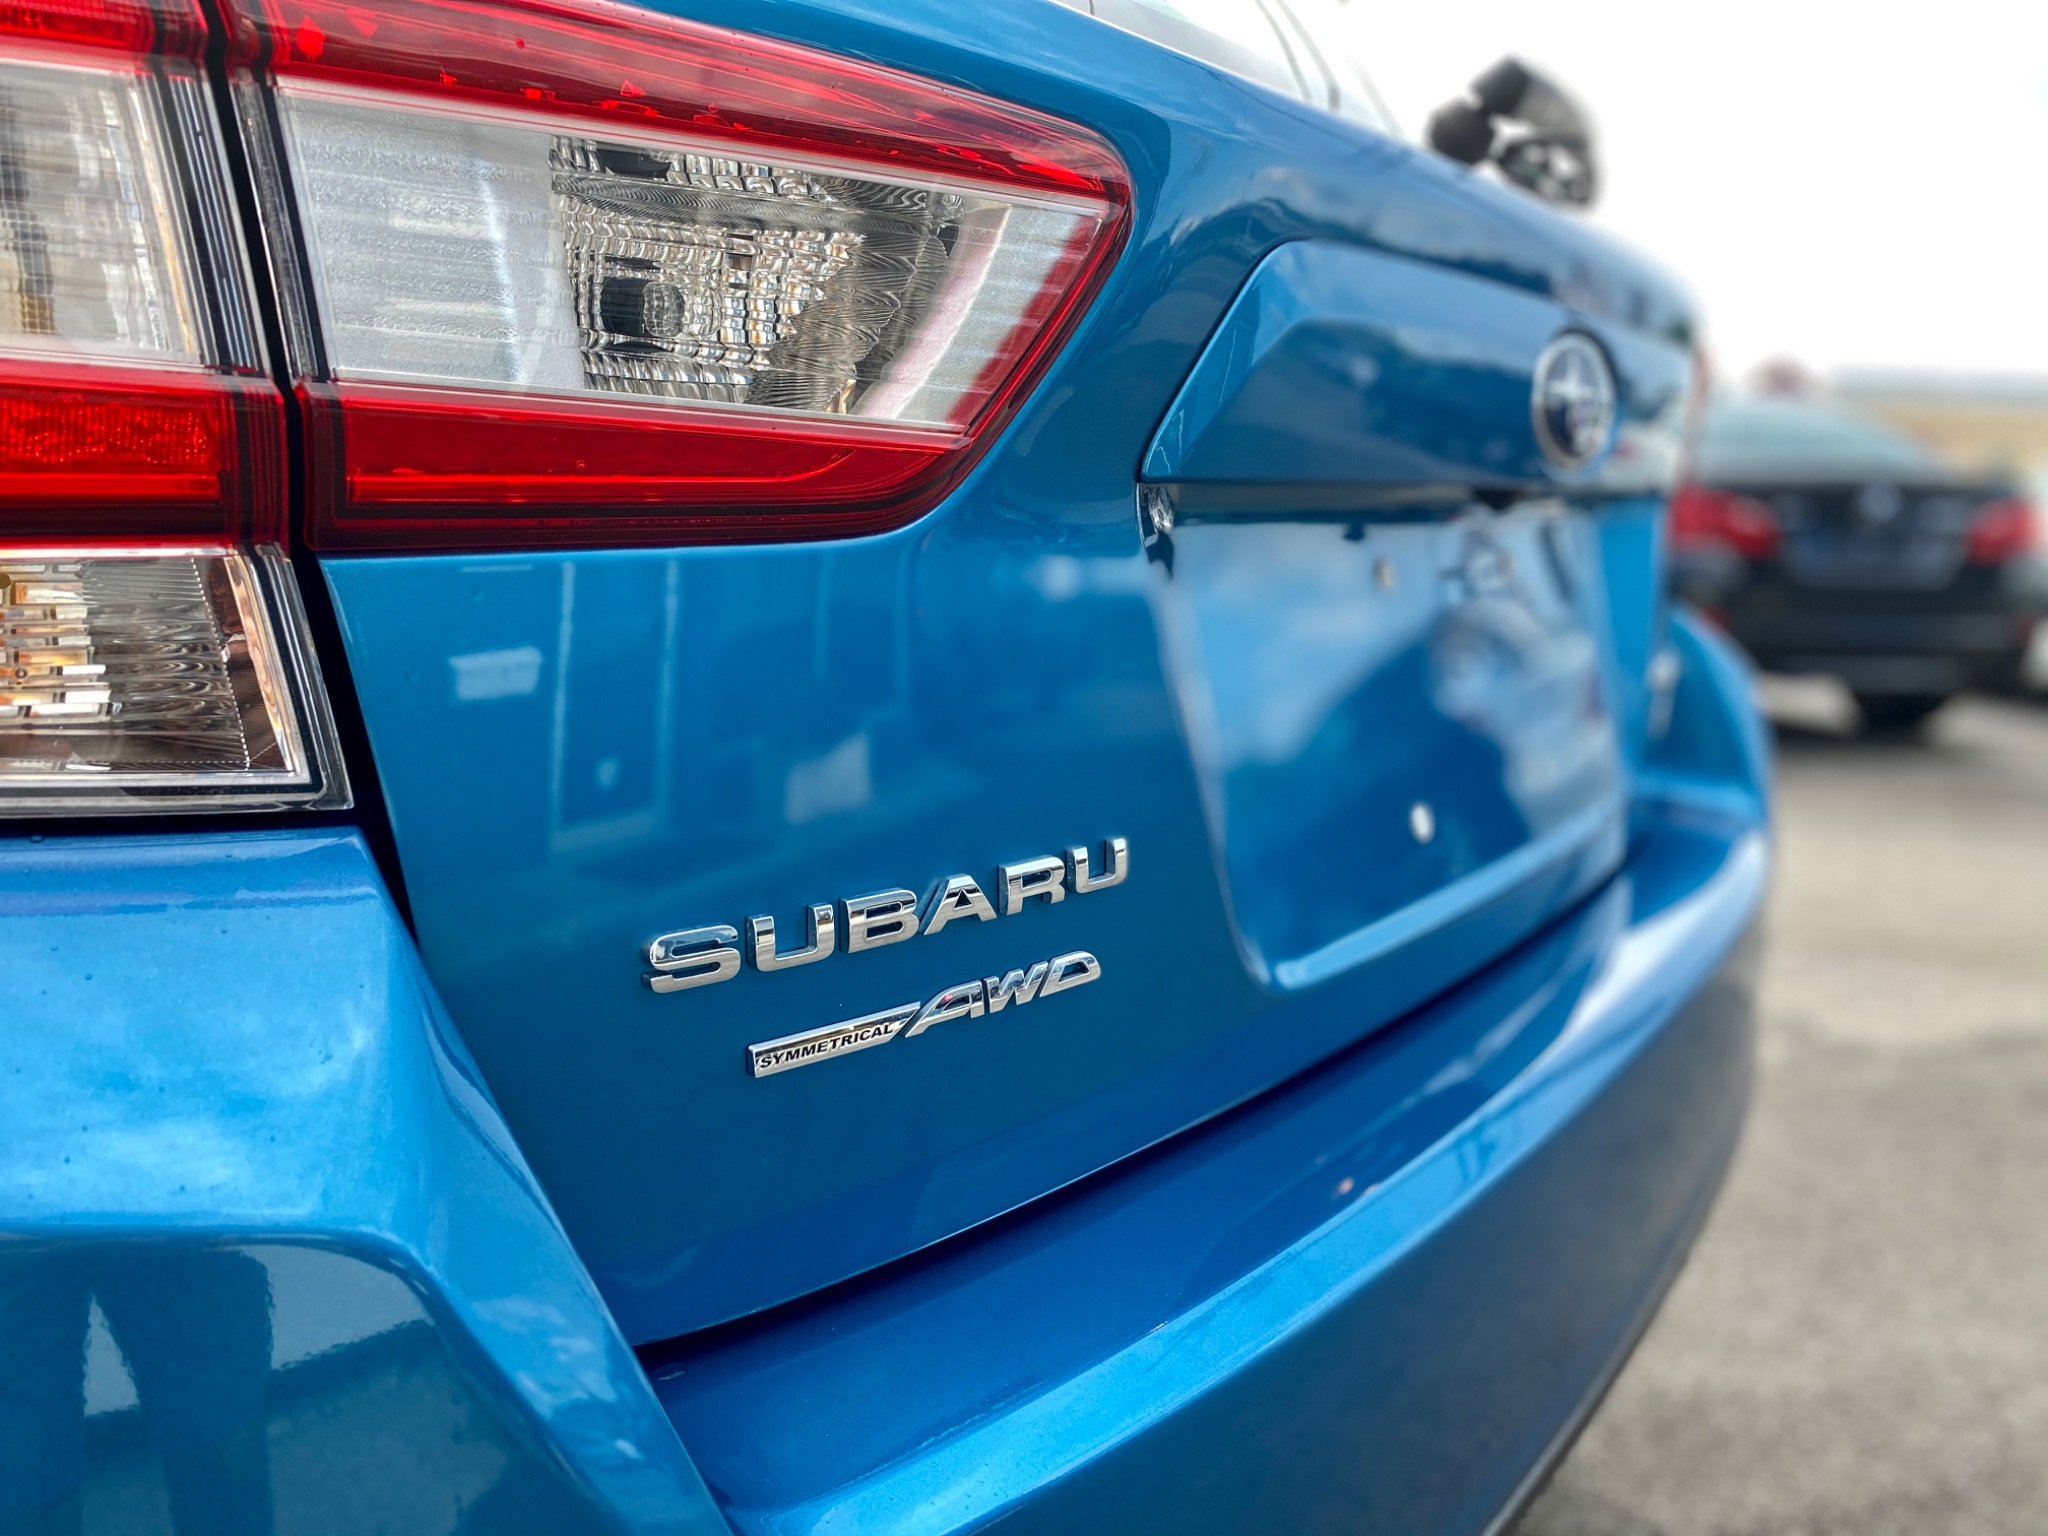 2017 Subaru Impreza AWD Apple/Android Car Play